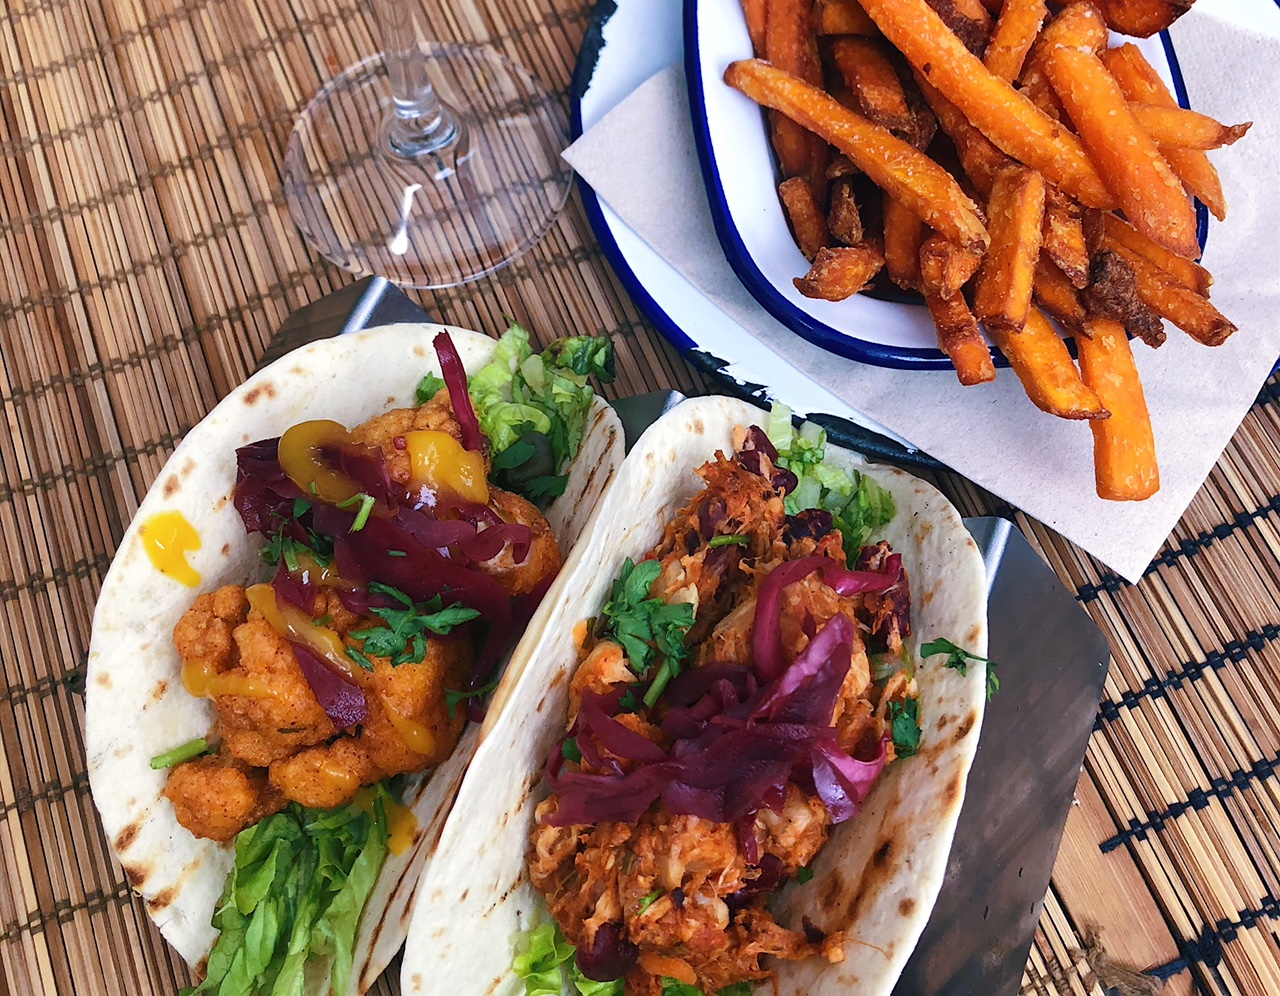 Veggie tacos and sweet potato fries from Monkey, the perfect post-adventure meal